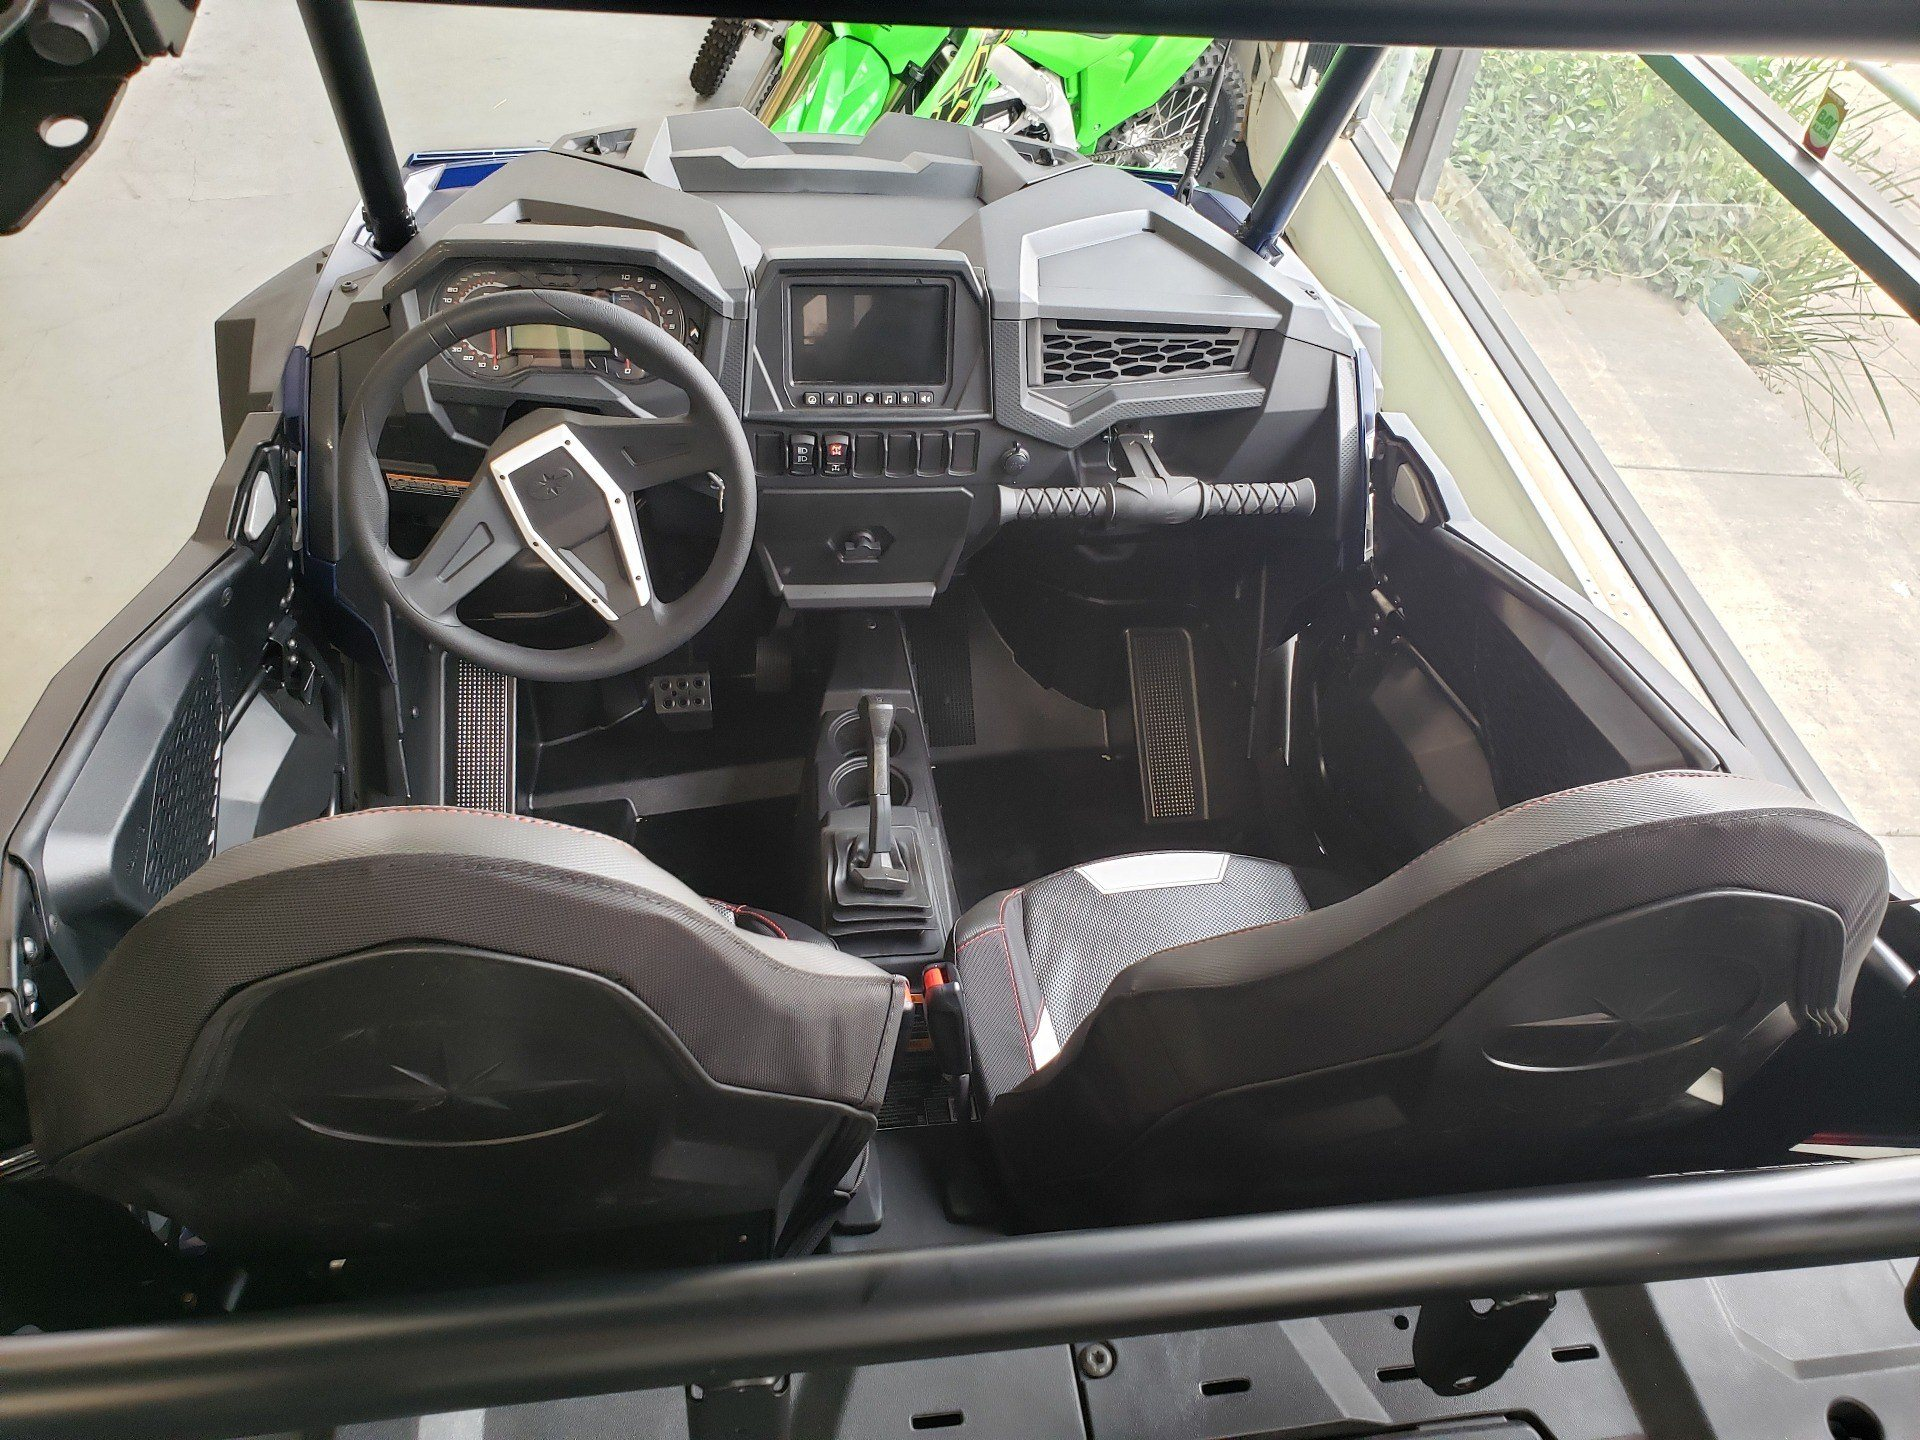 2021 Polaris RZR XP 1000 Premium in Vallejo, California - Photo 6